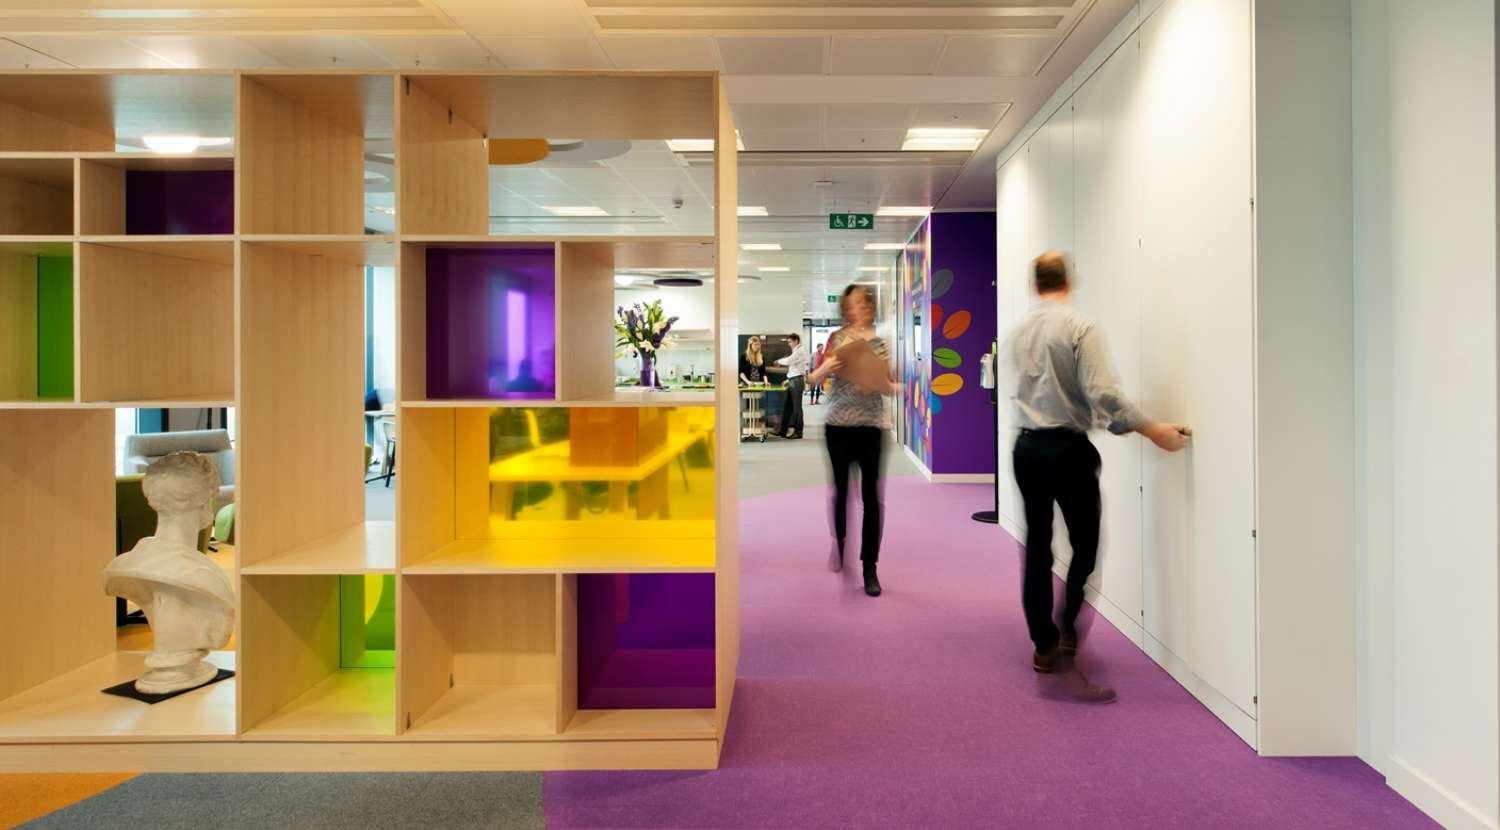 Coloured cubicles provide storage space and break up this open plan office fit out